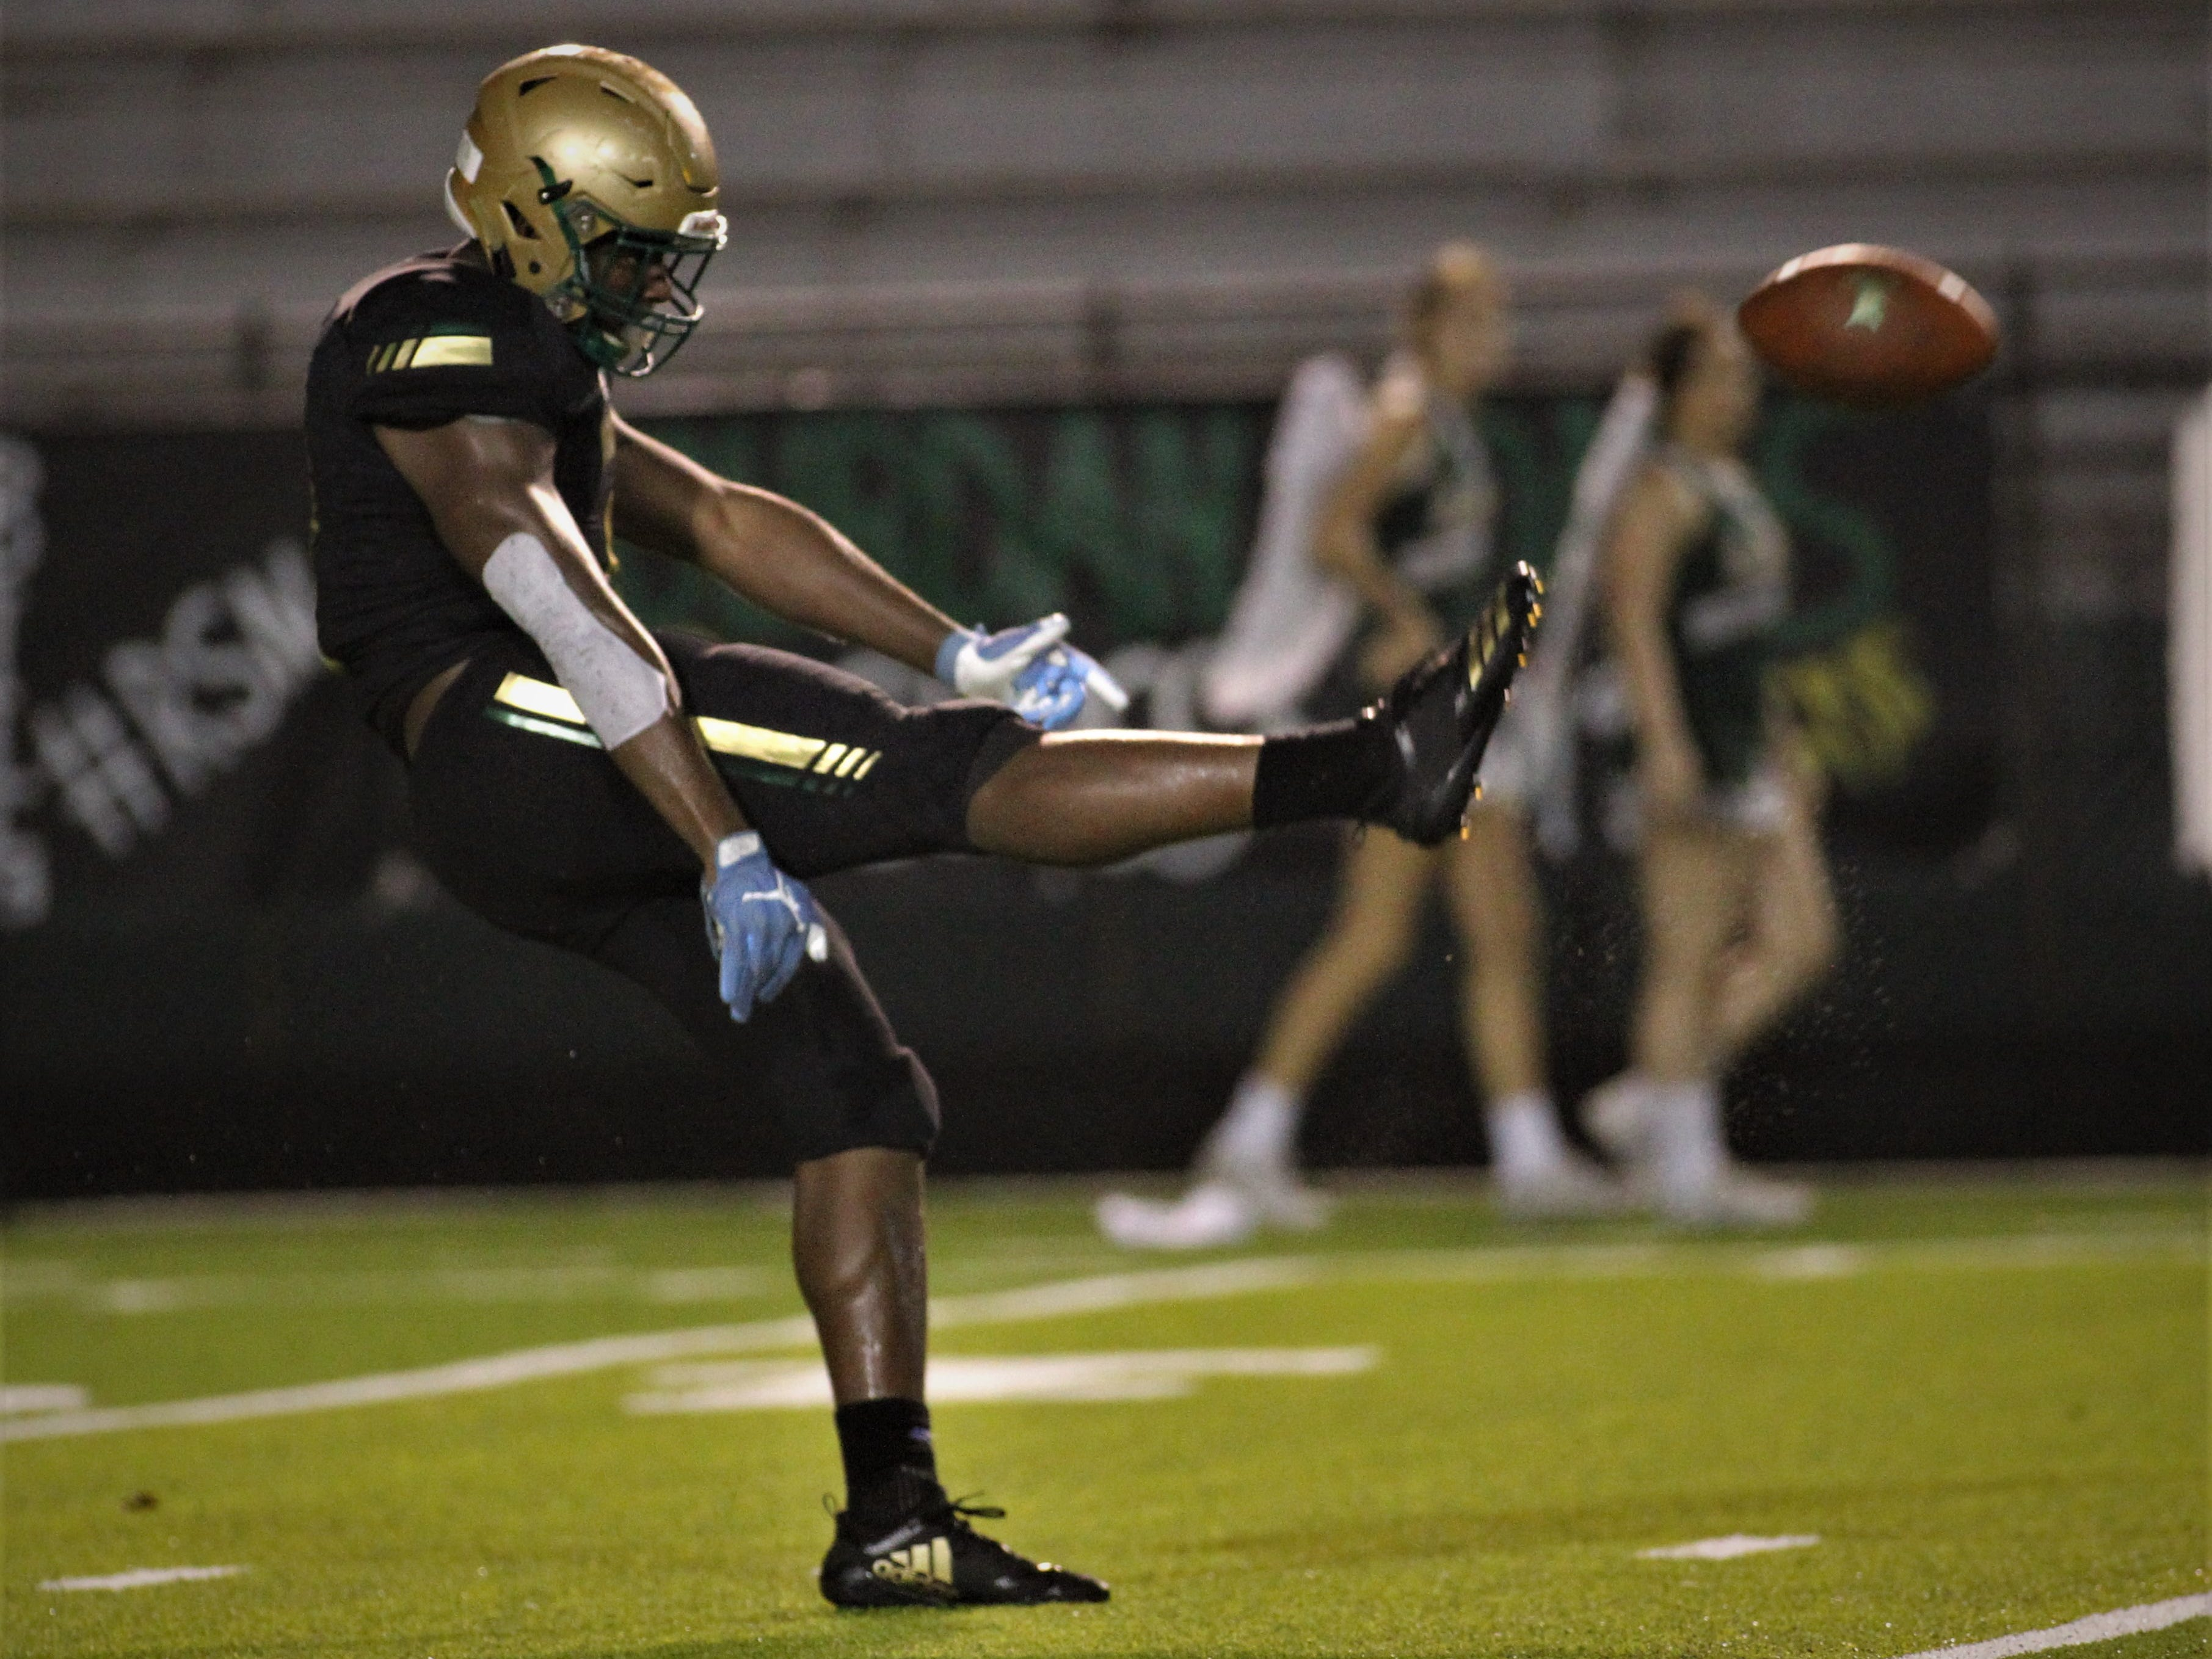 Lincoln's Kamari Morales gets off a punt as Lincoln beat Oakleaf 38-31 in three overtime periods during a Region 1-7A quarterfinal Thursday night at Gene Cox Stadium.